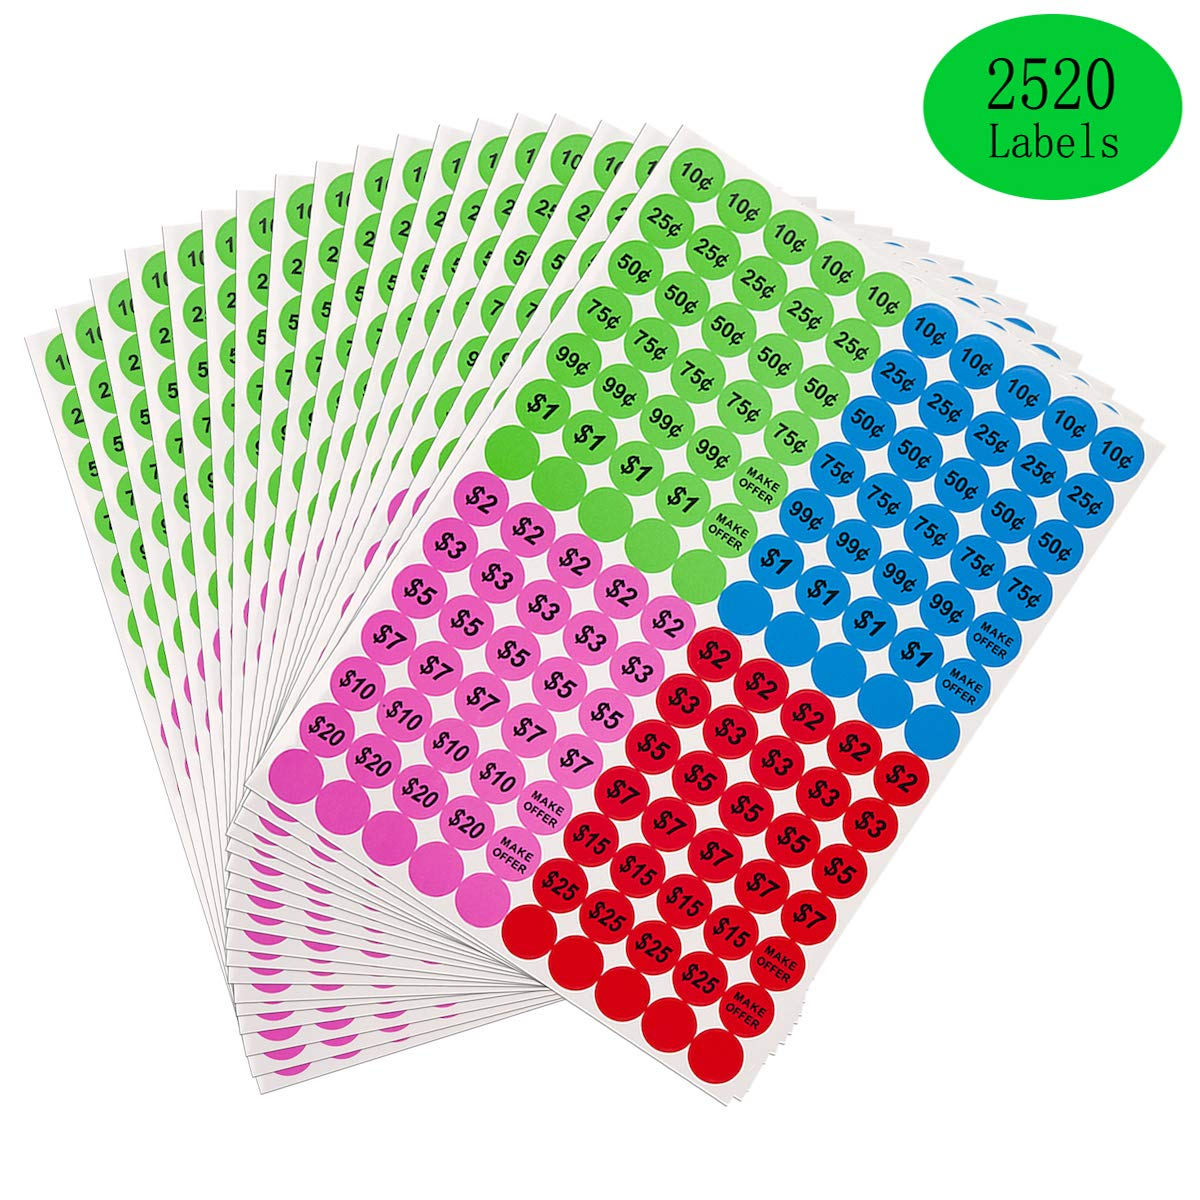 3//4 Round Preprinted Pricing Labels Price Stickers Anronal 2520 Count Garage Sale Pricing Stickers Removable Yard Sale Labels with Prices Green